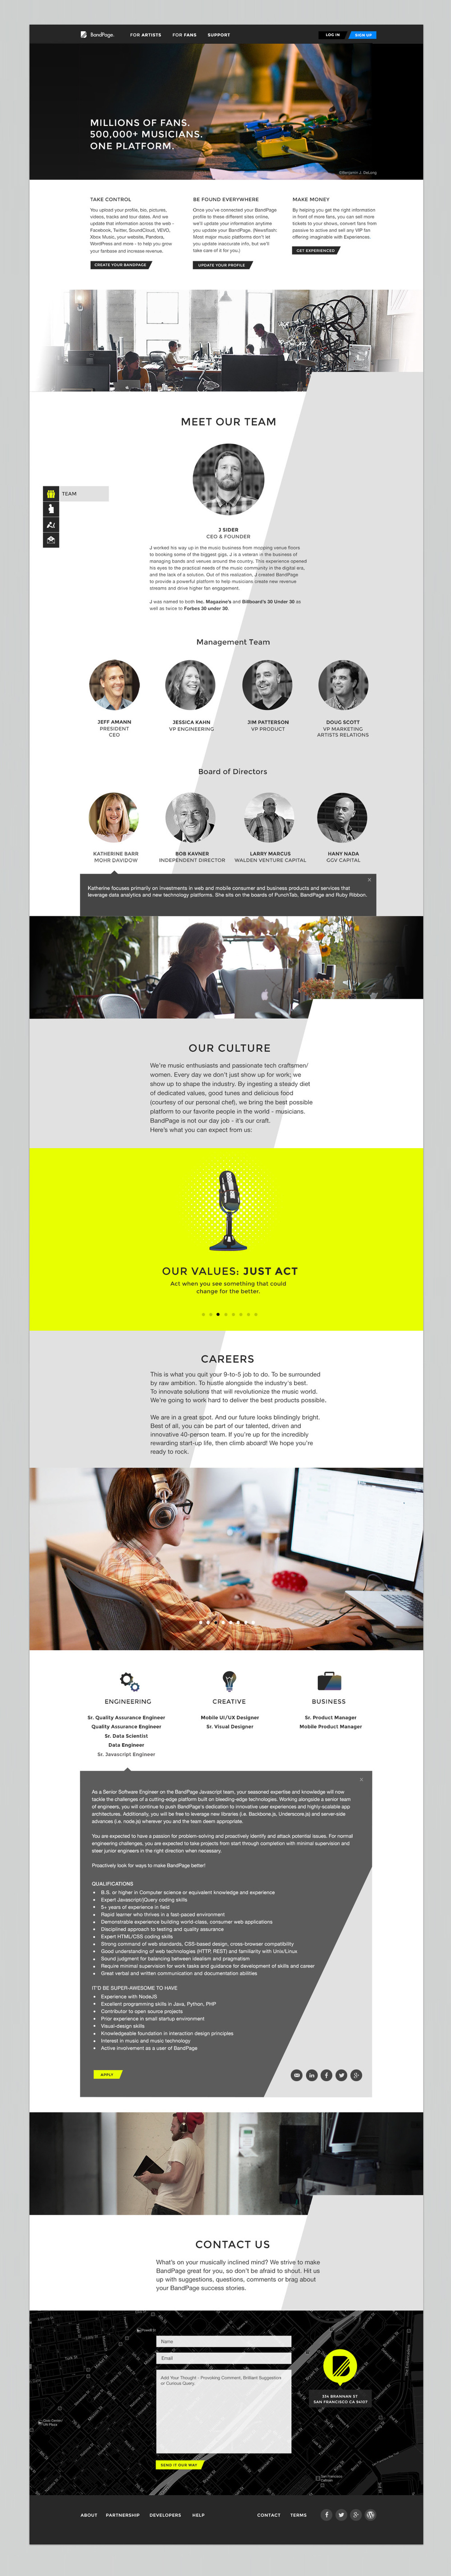 About Us - with executive team bios, current job options, company's culture (slideshow) and more.